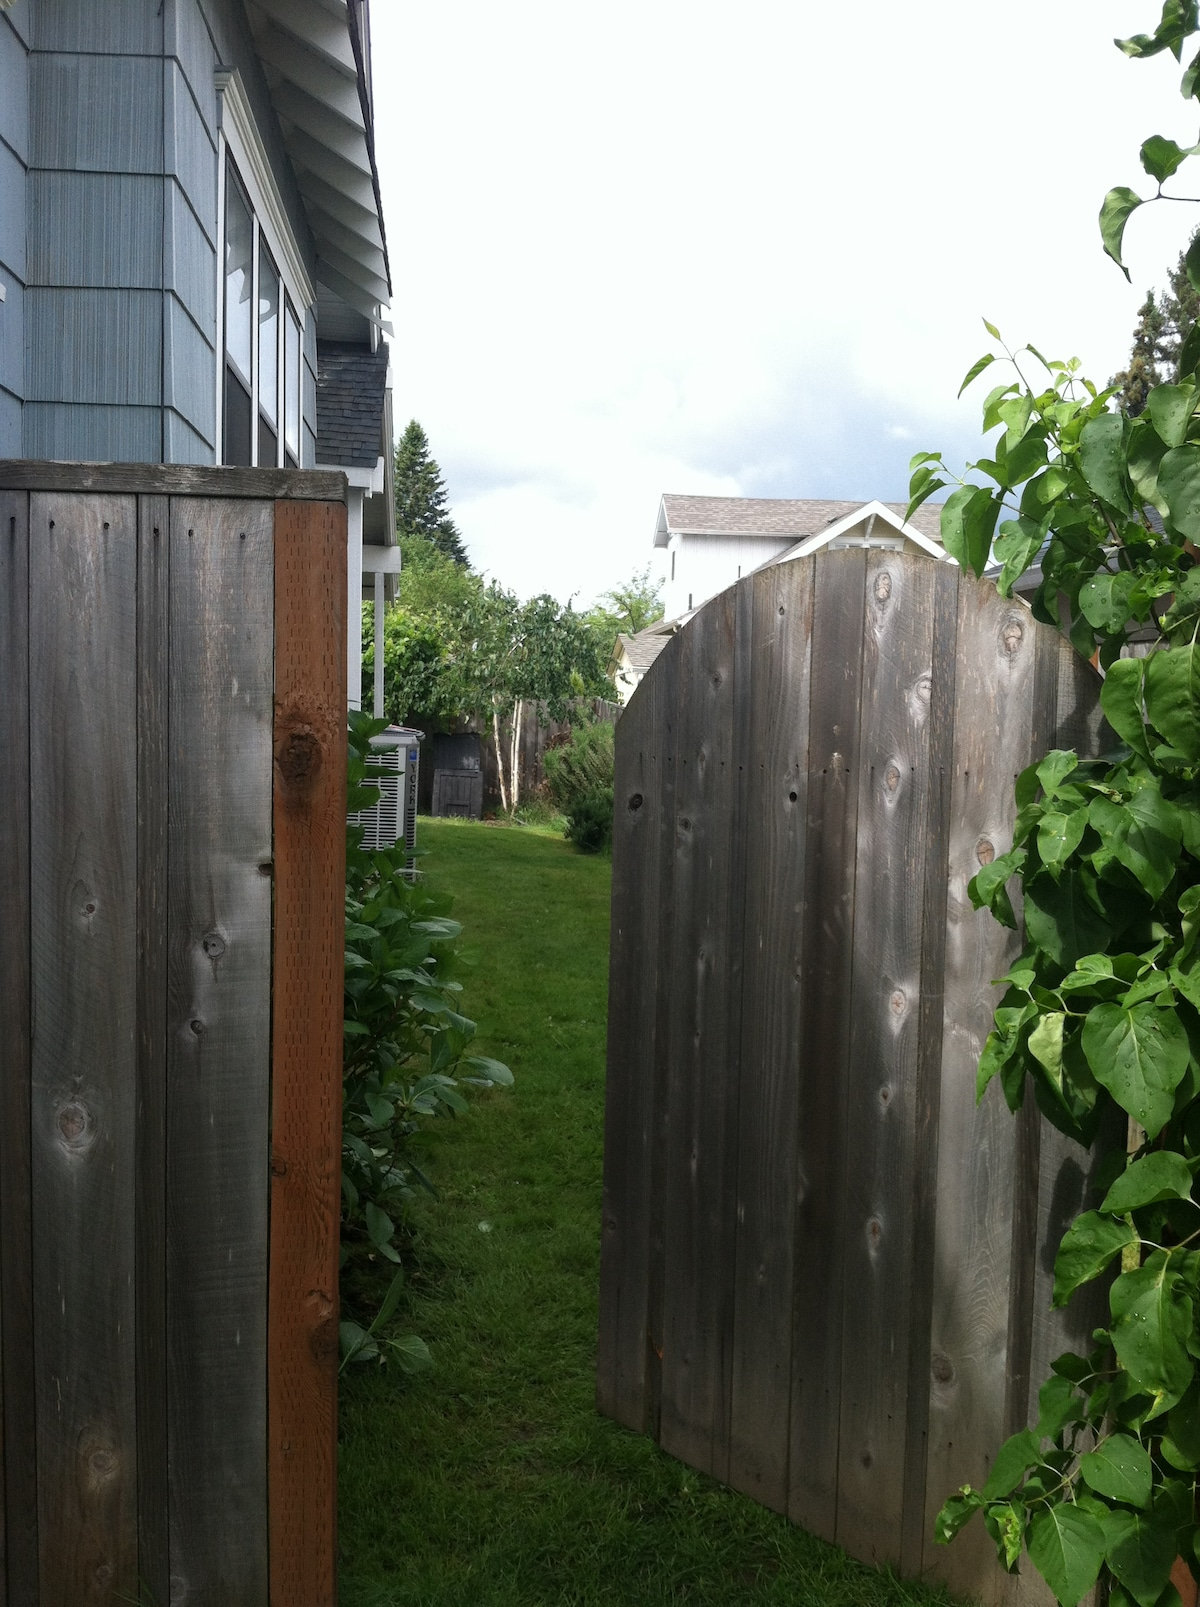 Your private entrance is around the back of the house